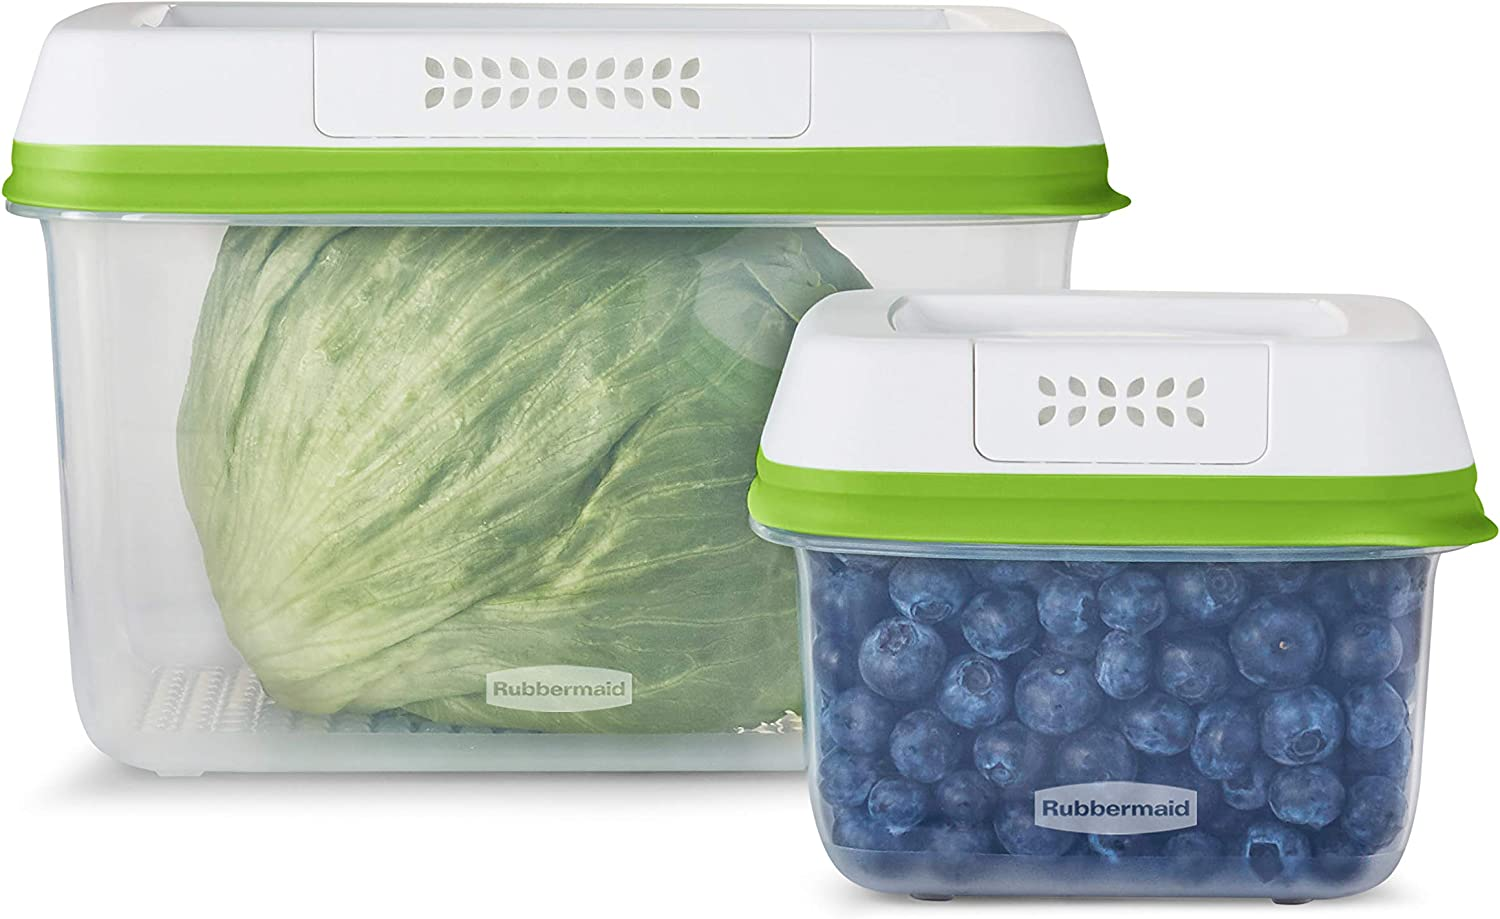 Rubbermaid FreshWorks Saver, Medium and Large Produce Storage Containers, 4-Piece Set, Clear